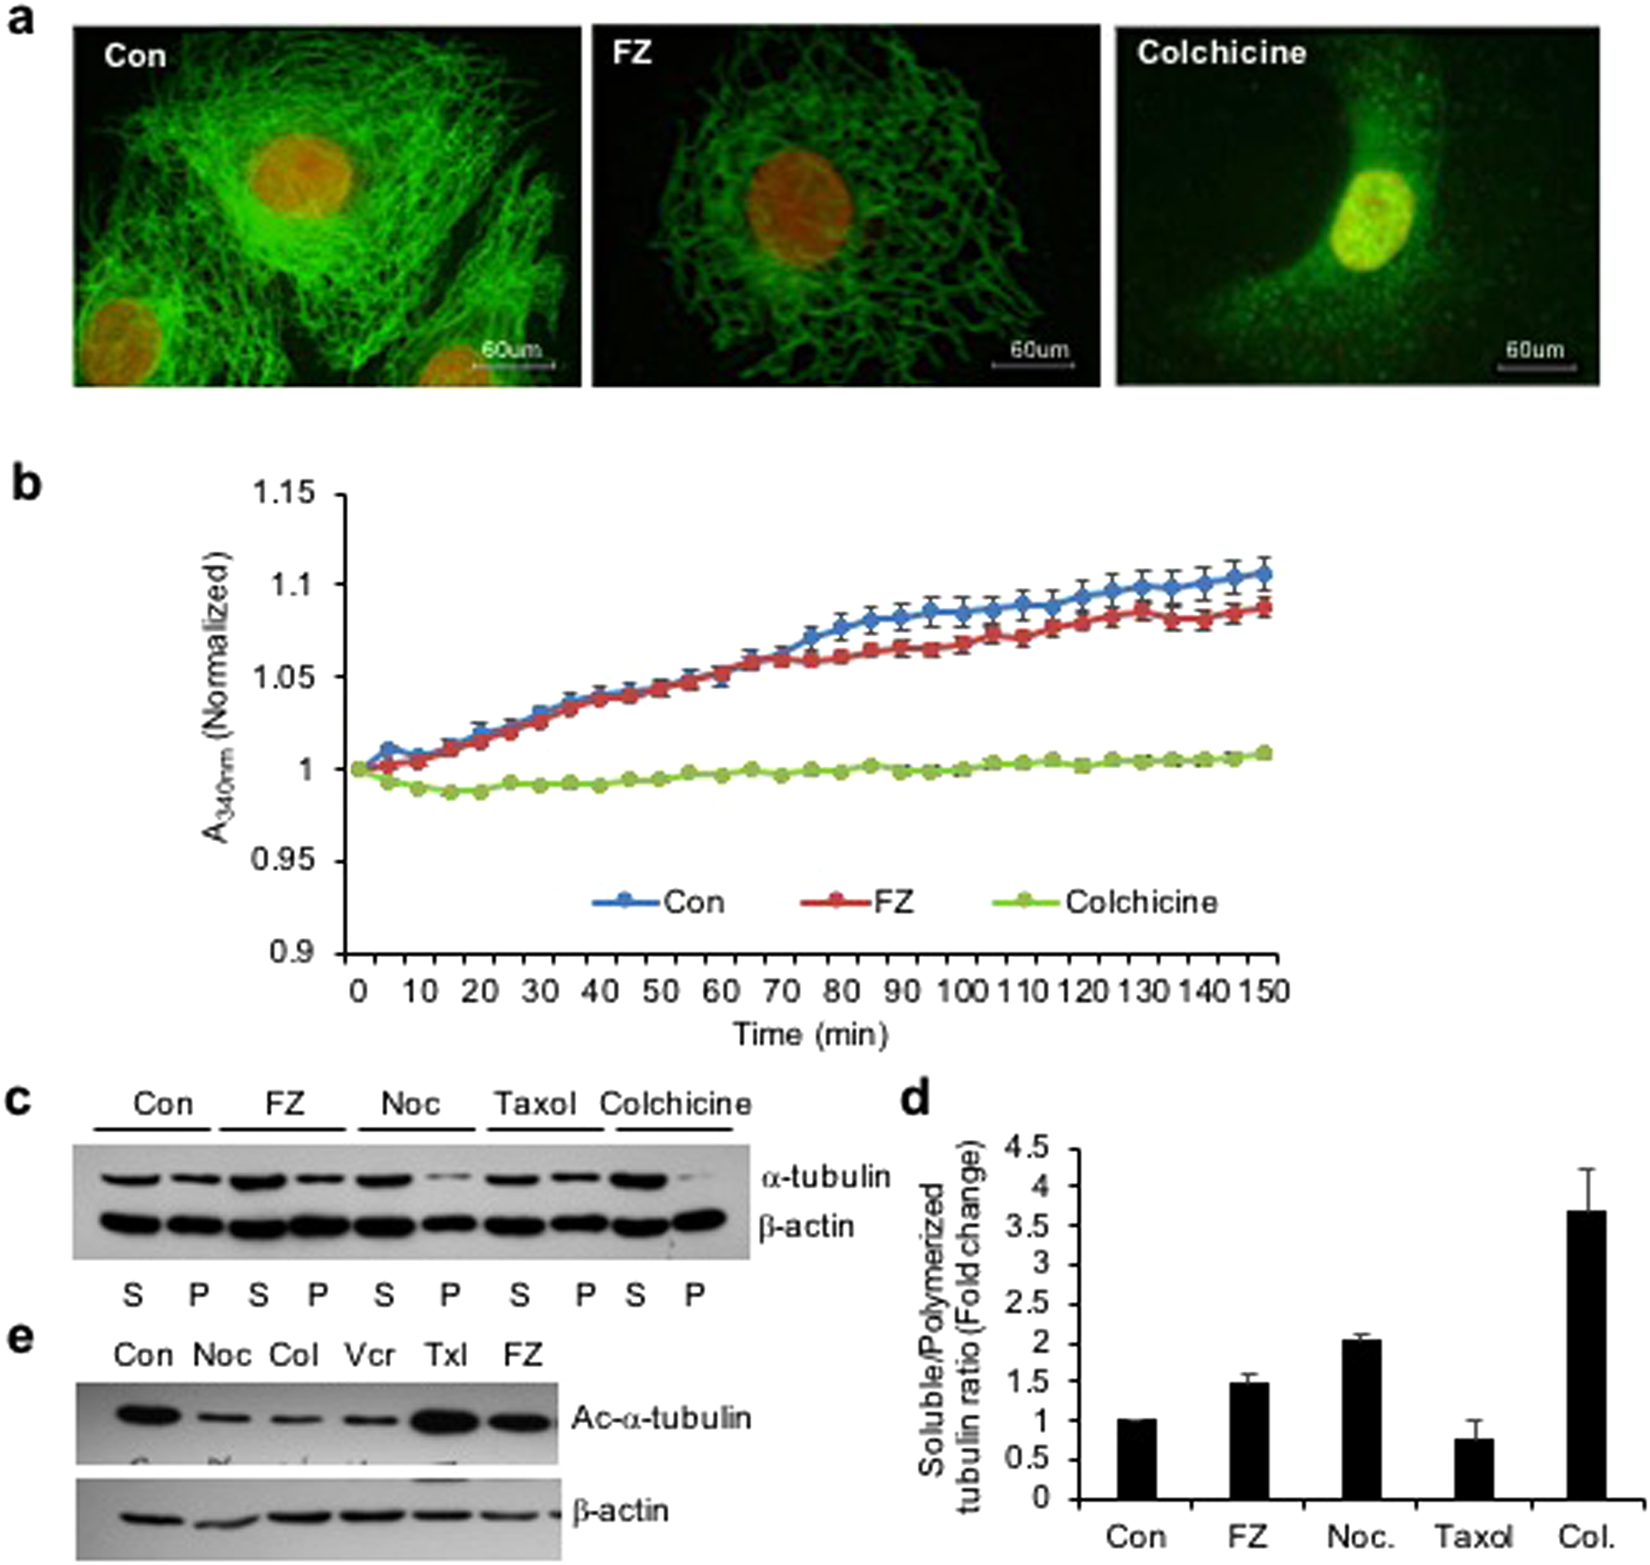 Fenbendazole acts as a moderate microtubule destabilizing